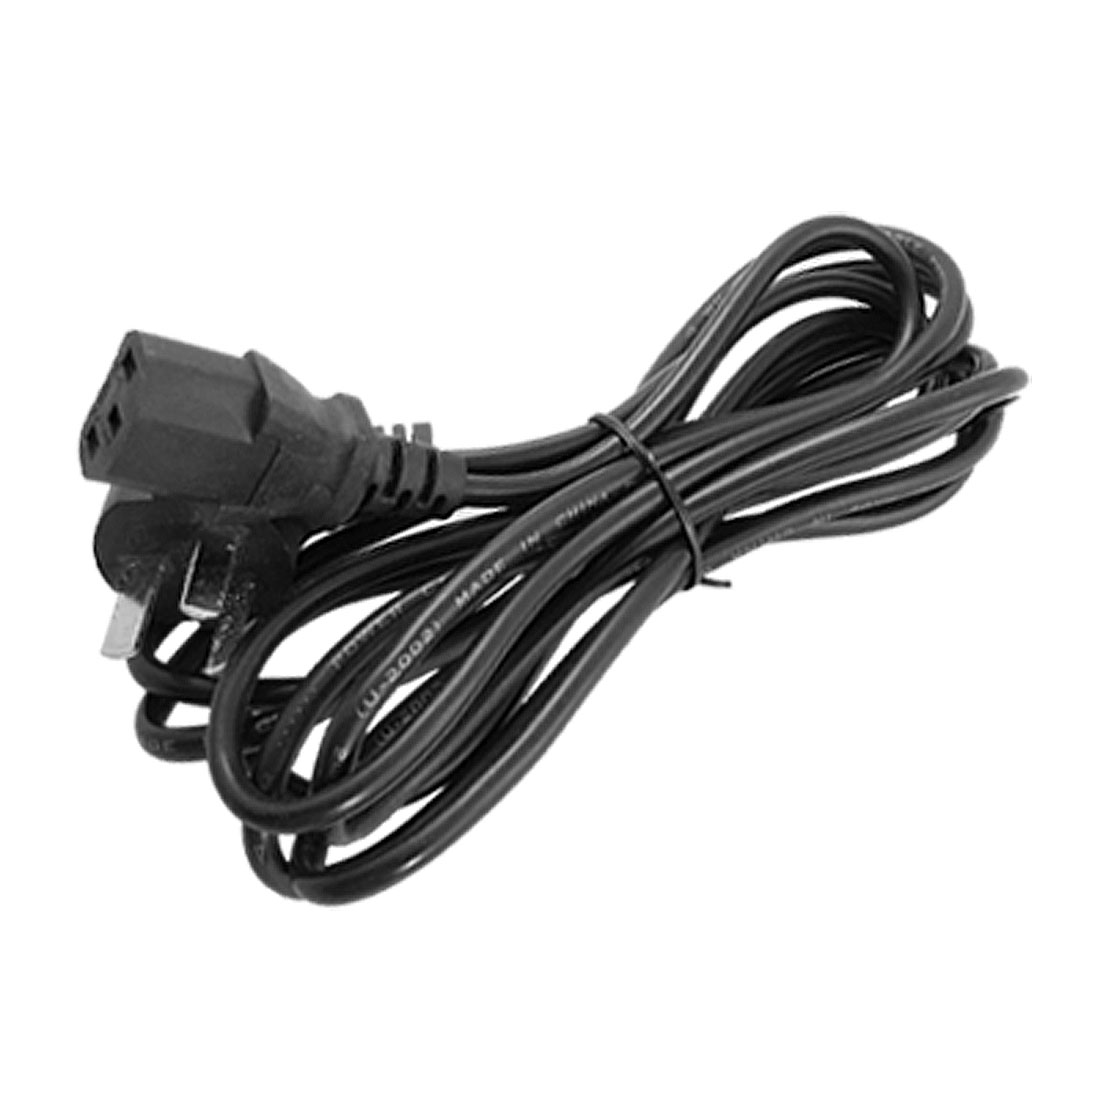 AU Plug 3 Meters Black 250V 10A PC Monitor Power Cable